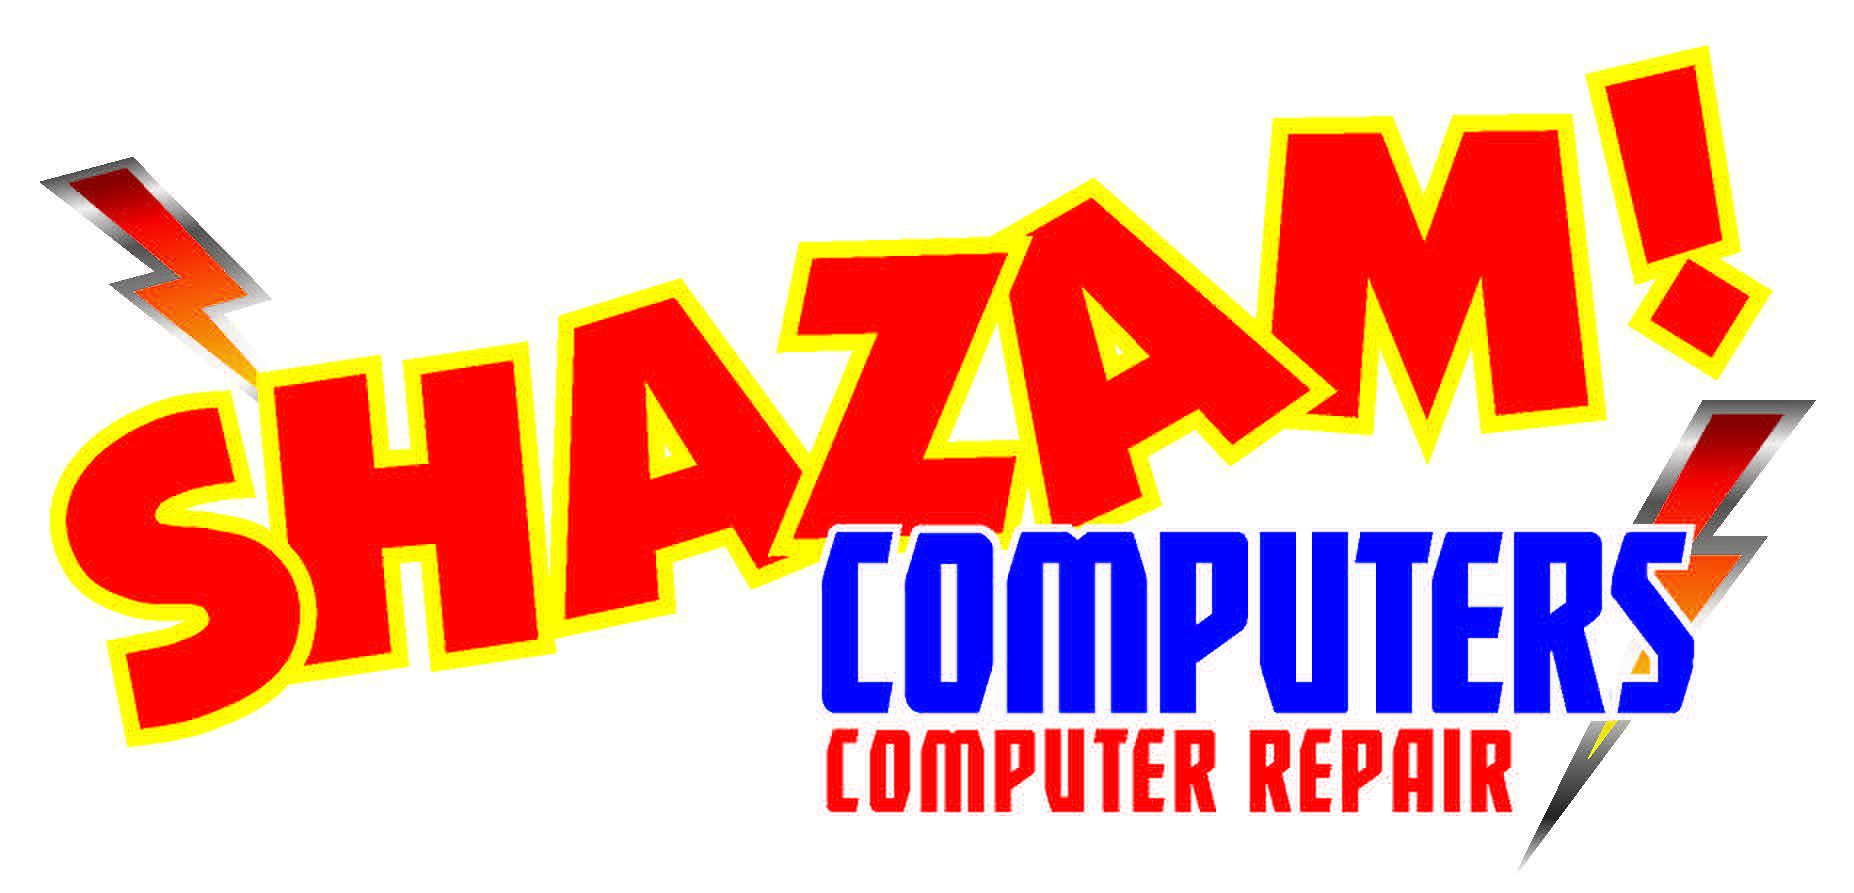 SHAZAM! Computers PC & Apple/Mac computer repair